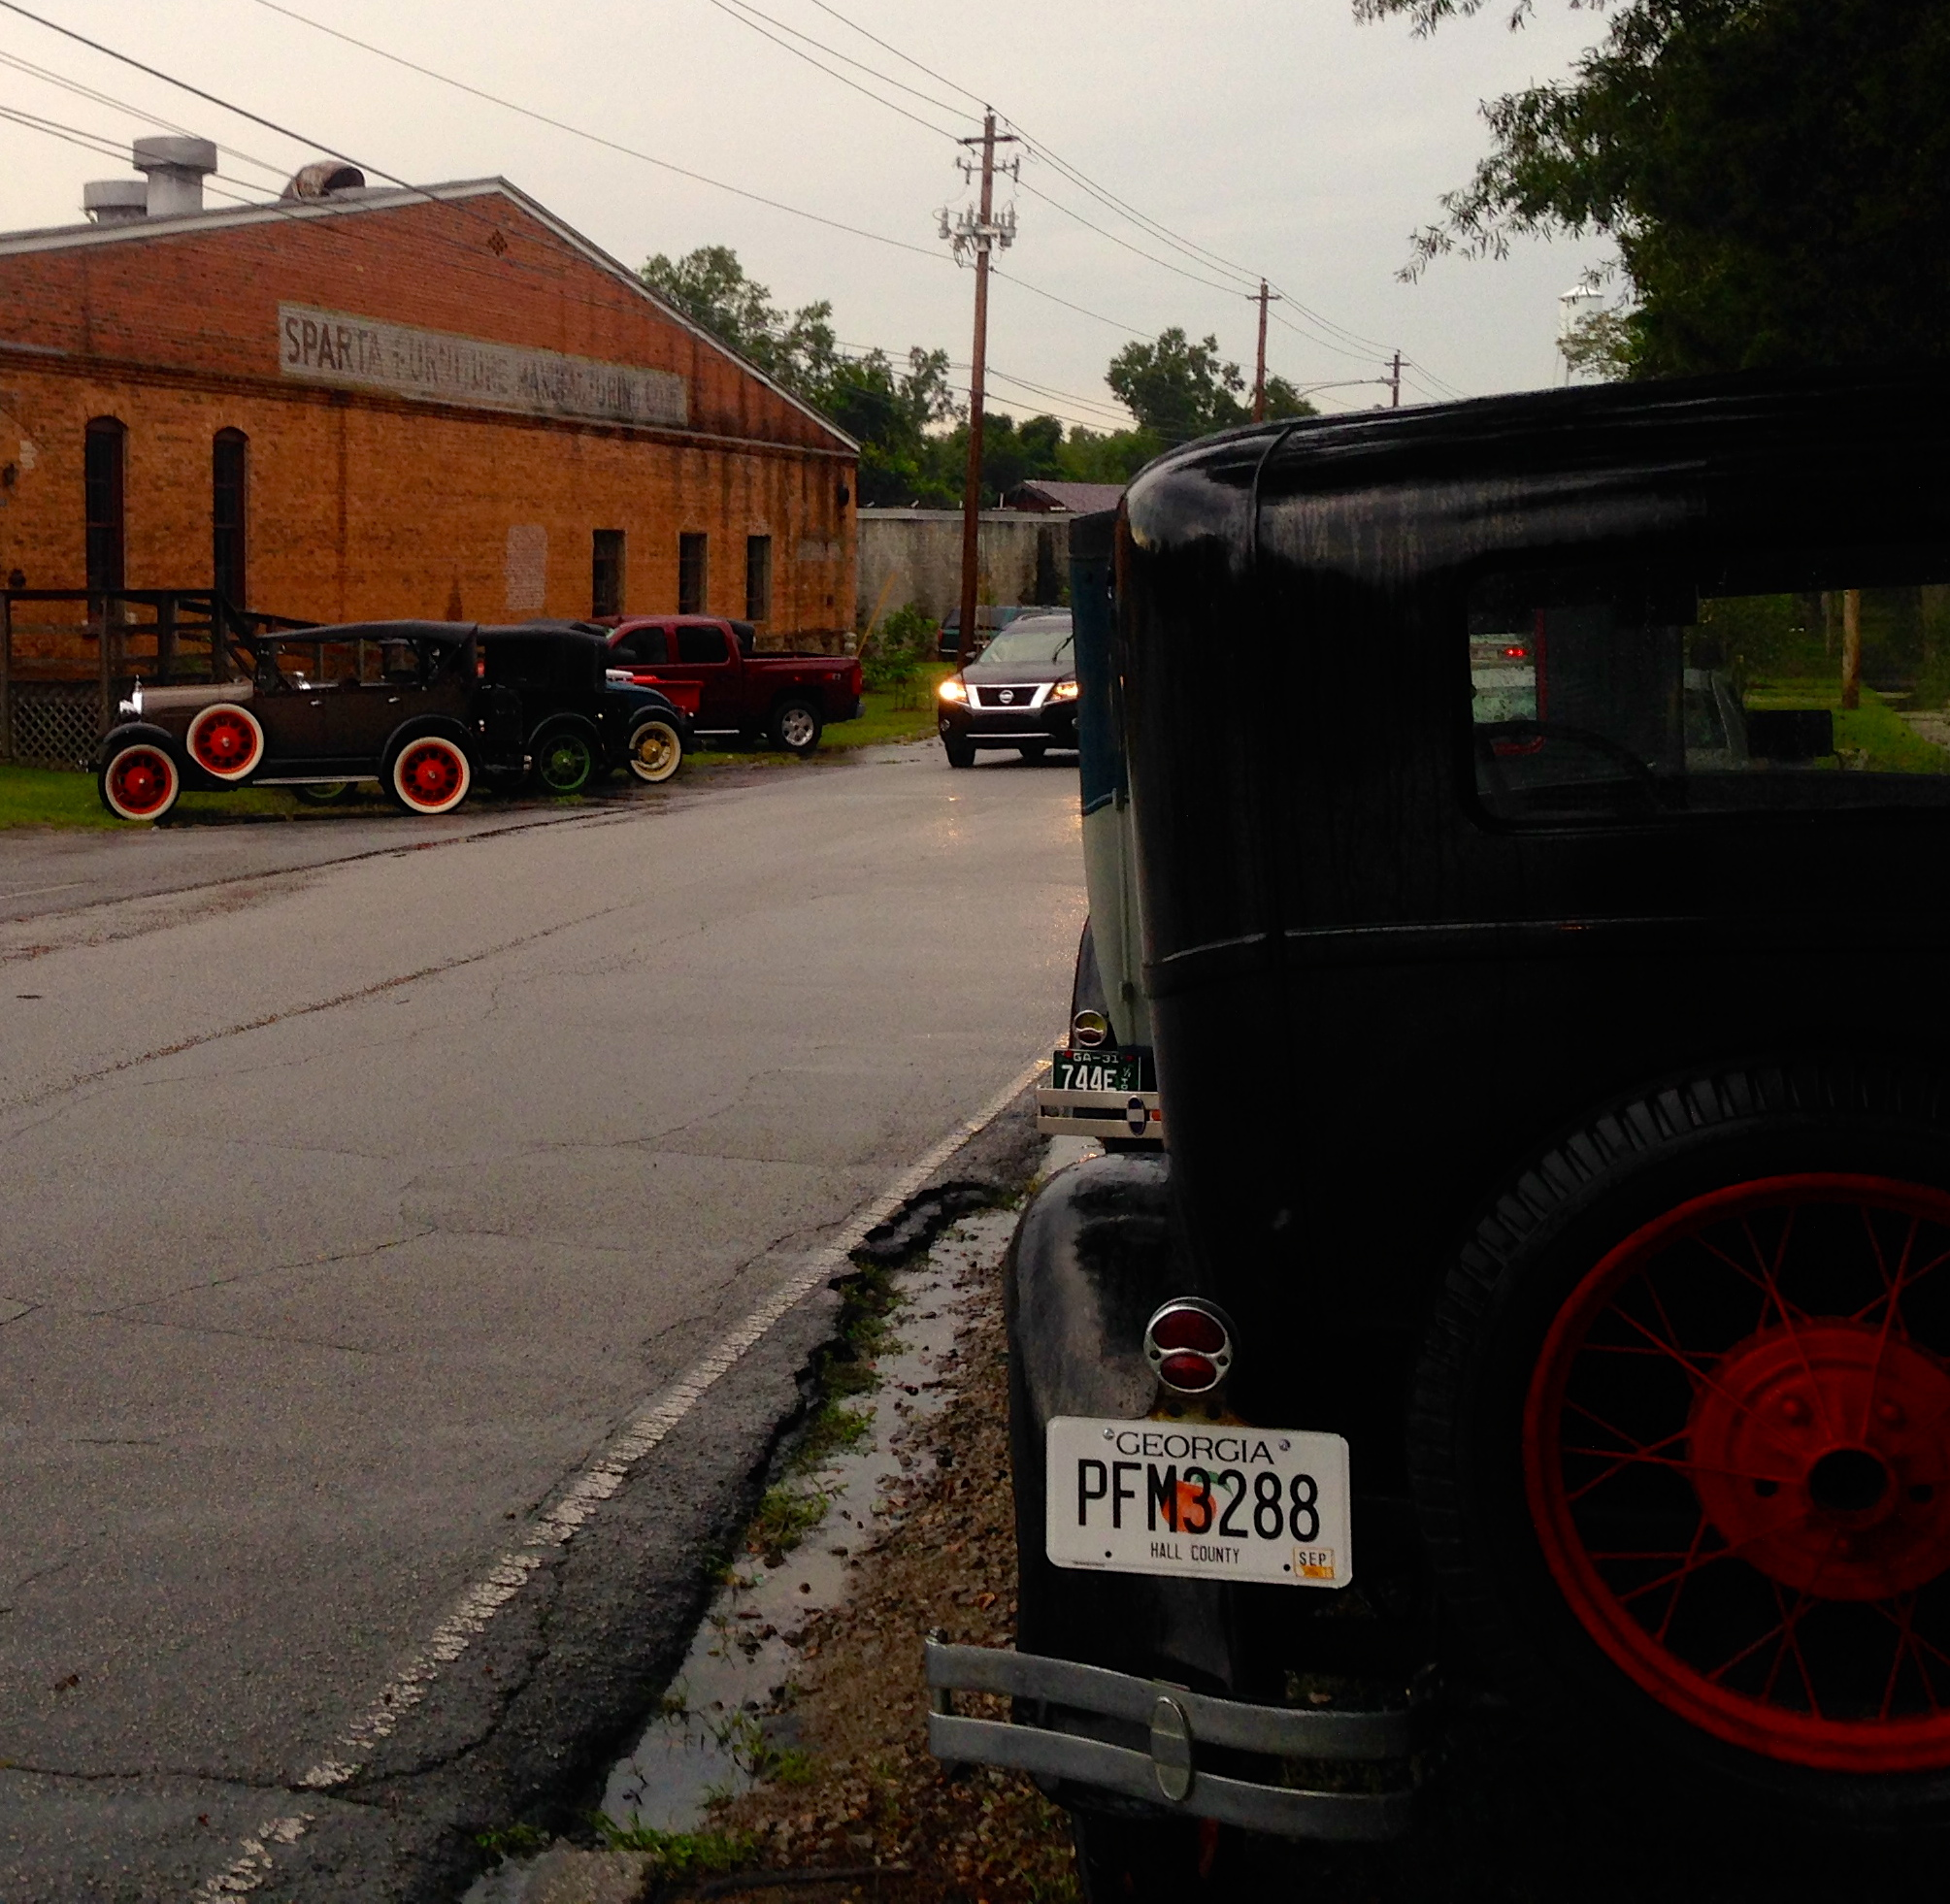 There were a few of the cars parked by the side of the house and by the old cotton warehouse building where Sparta Mushrooms are raised.